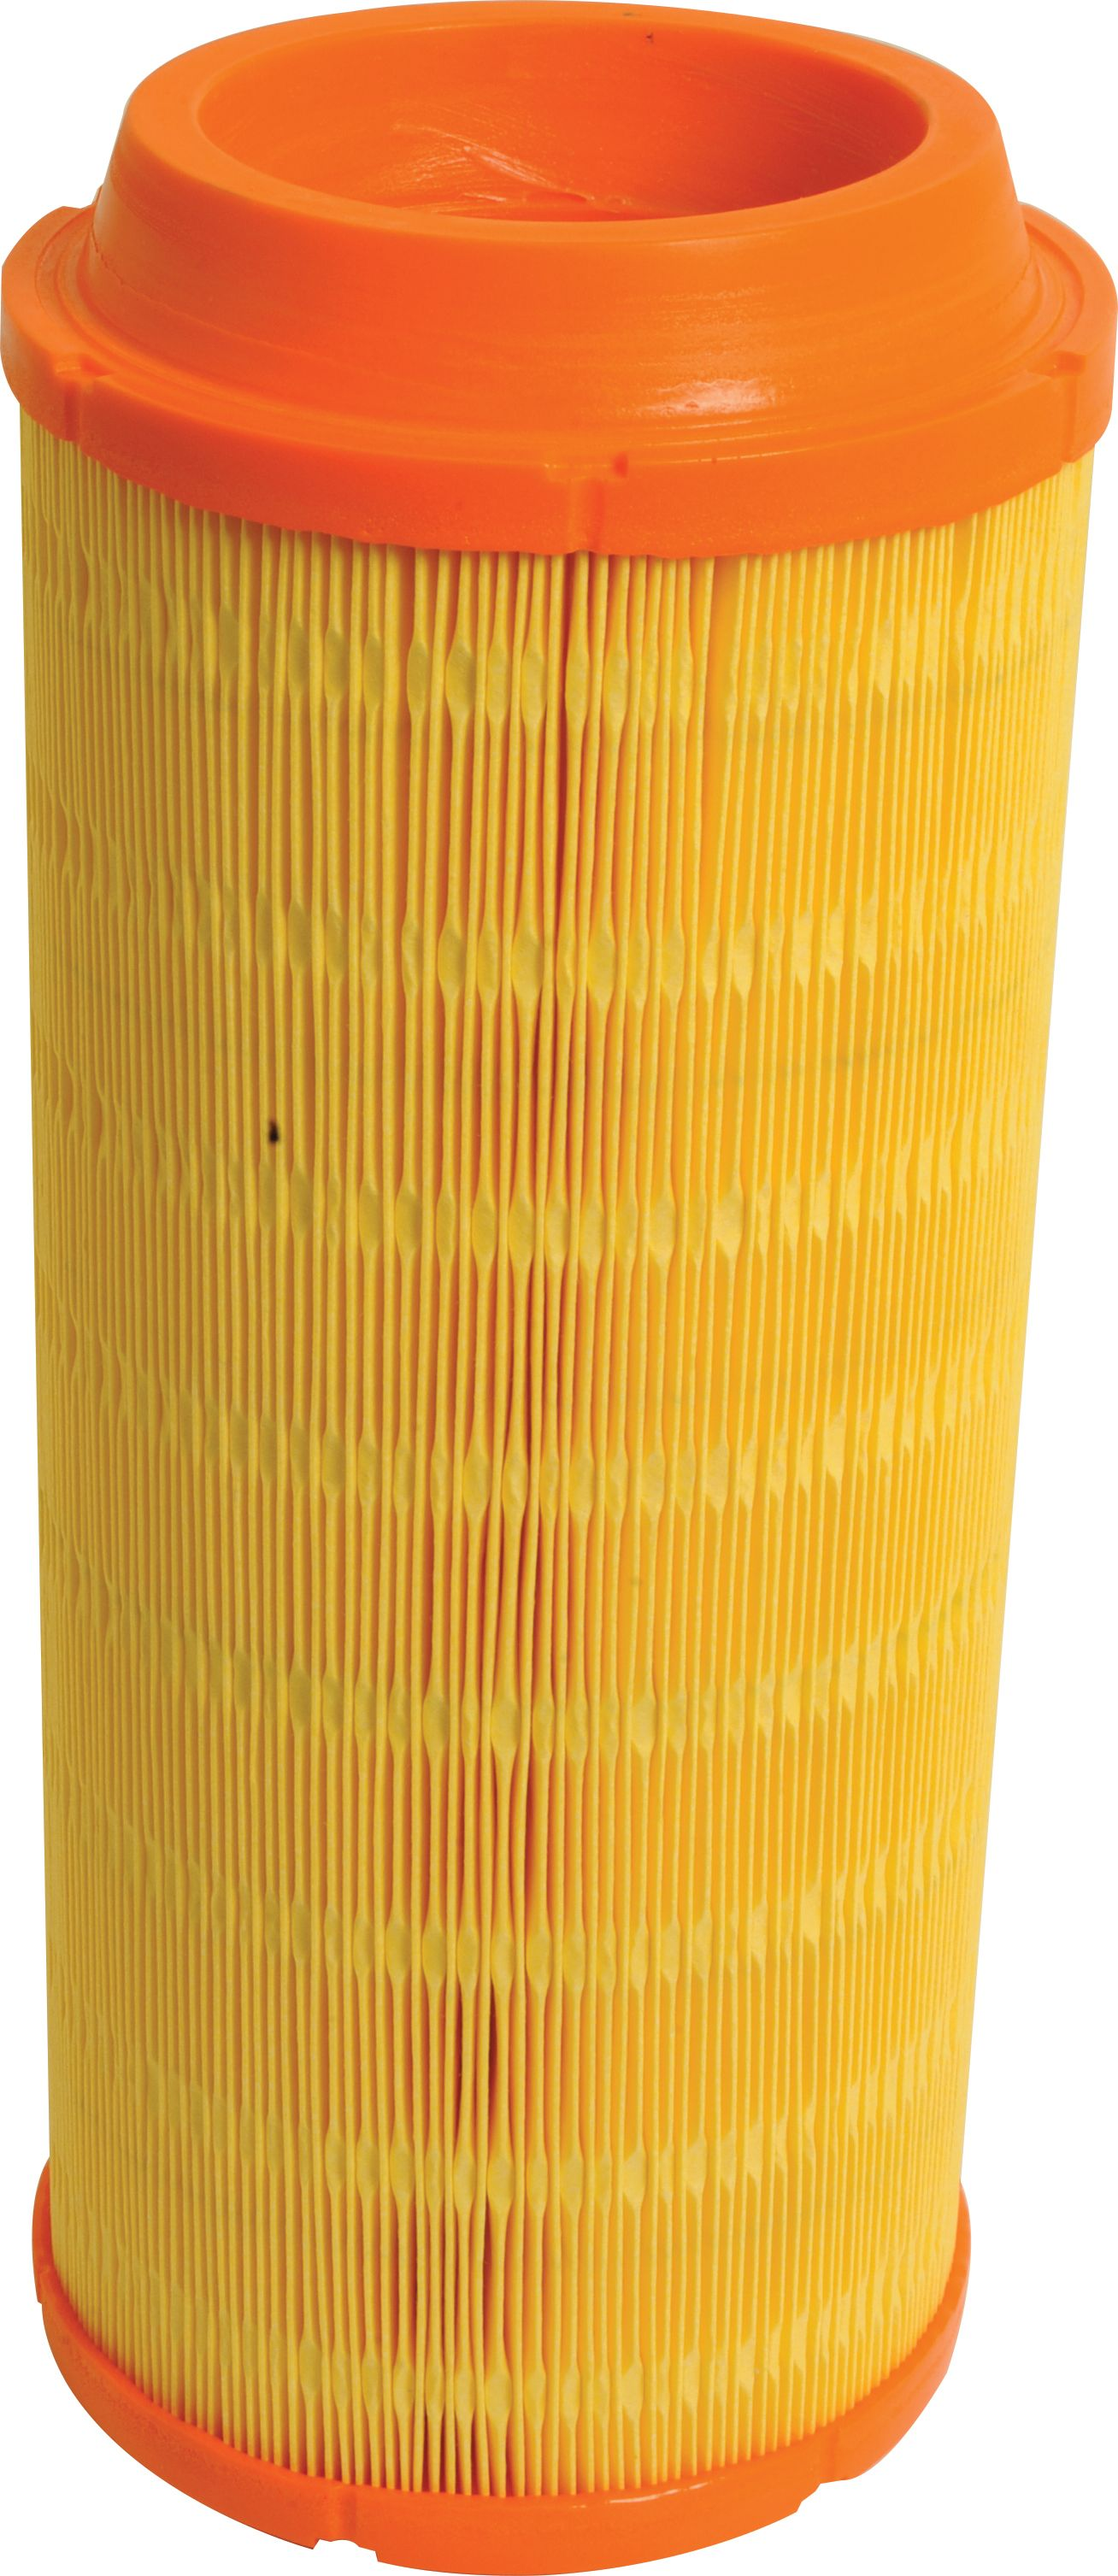 JCB OUTER AIR FILTER 76824